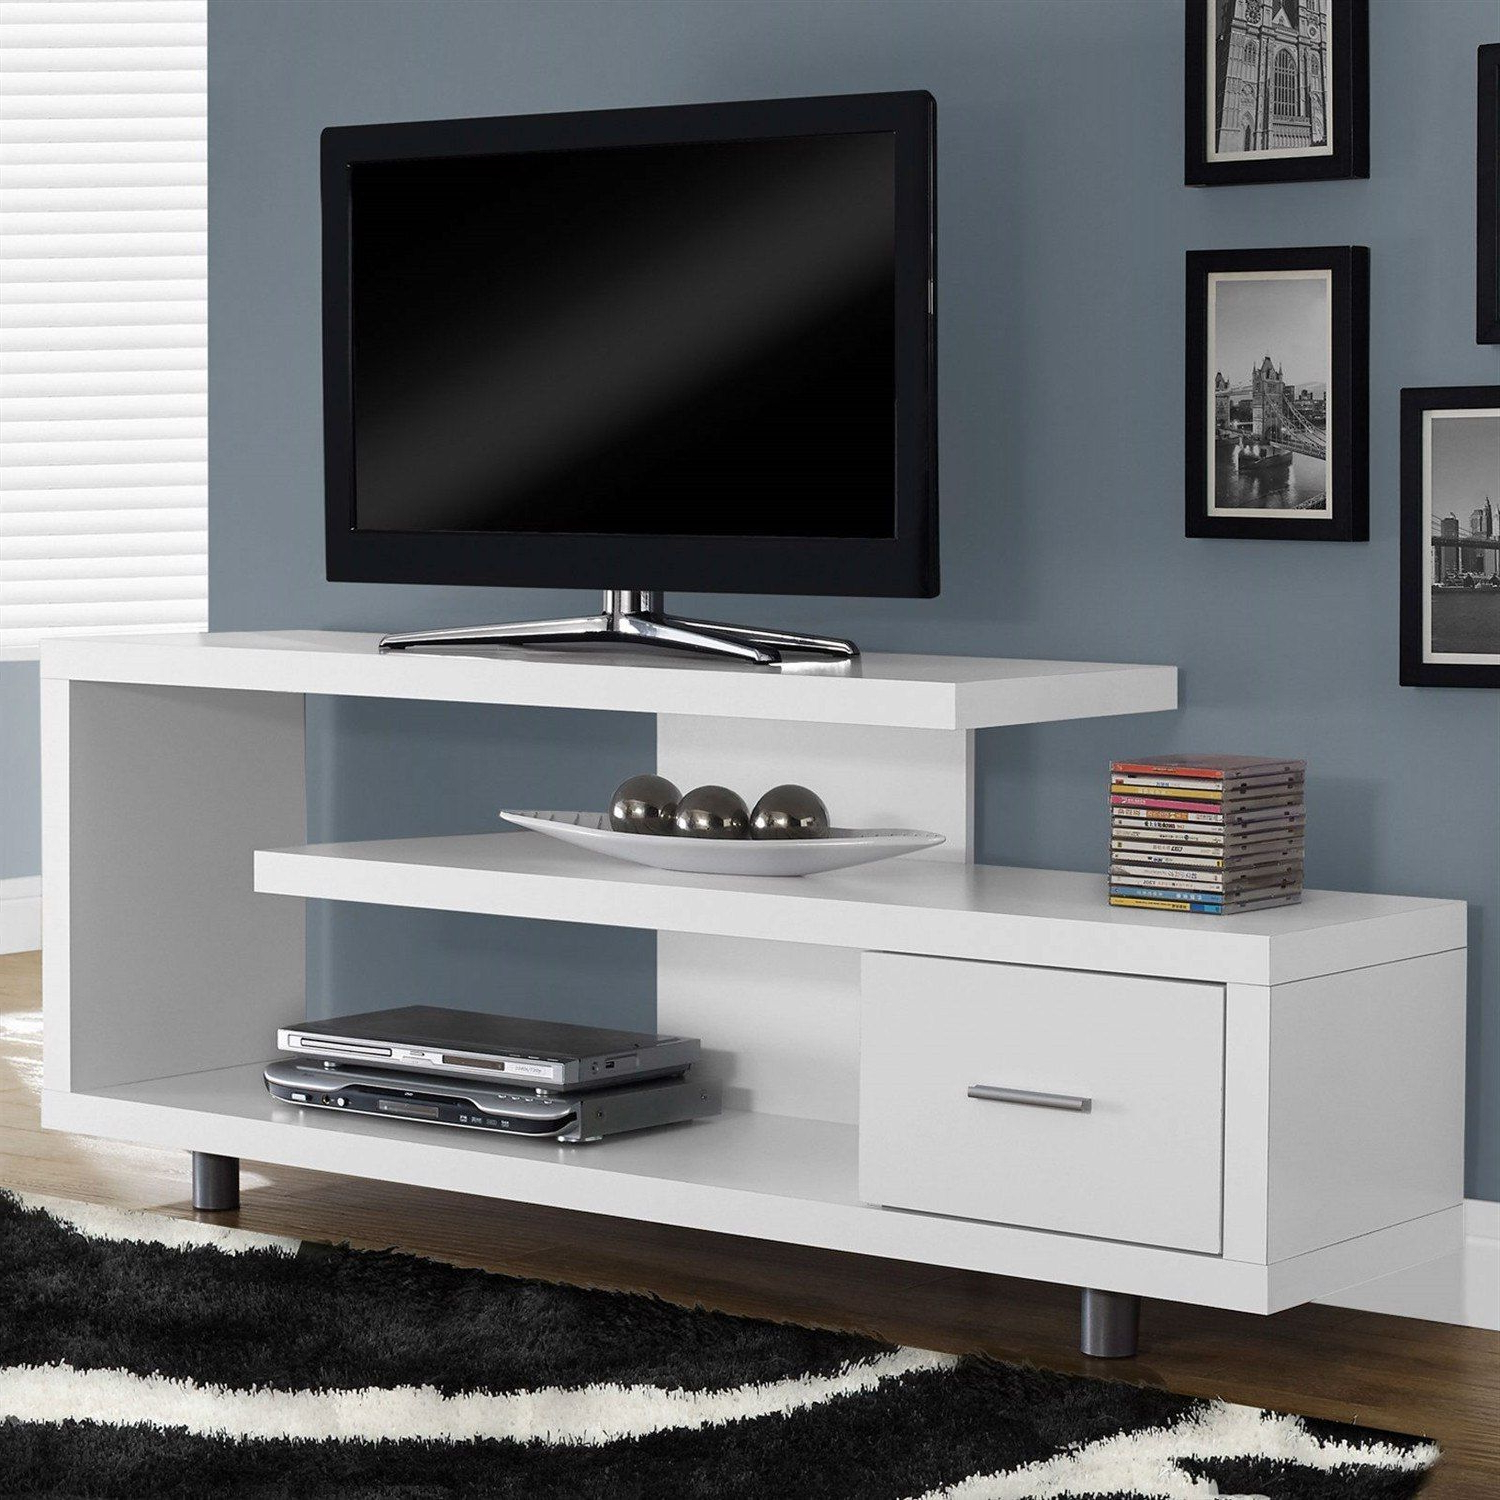 Unique Tv Stands For Flat Screens With Regard To Recent White Modern Tv Stand – Fits Up To 60 Inch Flat Screen Tv (Gallery 3 of 20)